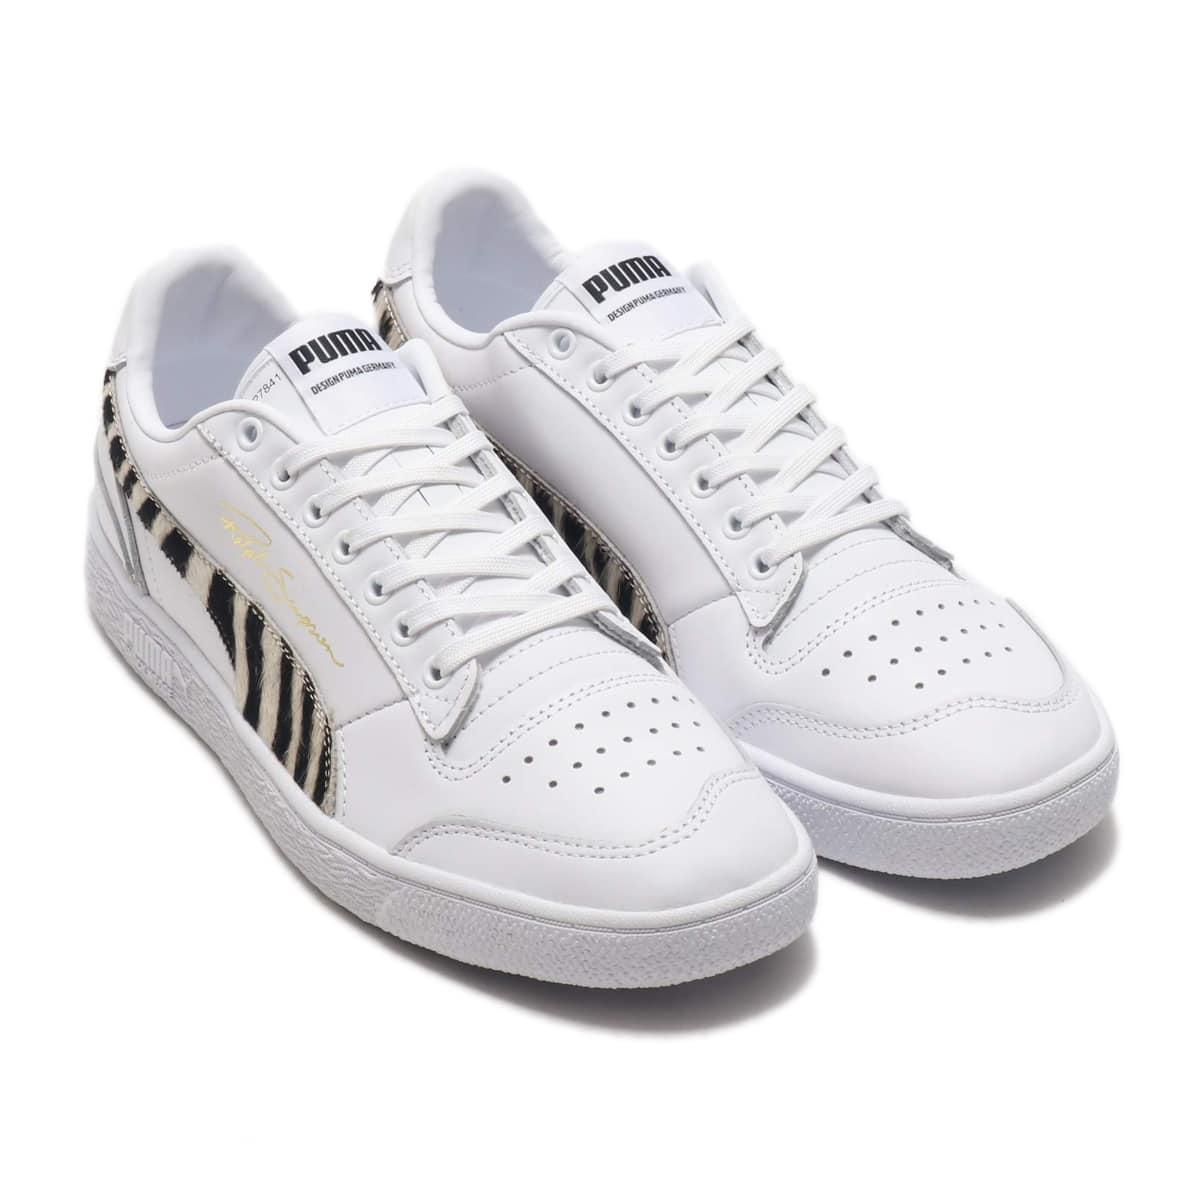 PUMA RALPH SAMPSON LOW WILD PUMA WHITE-PU 19HO-S_photo_large